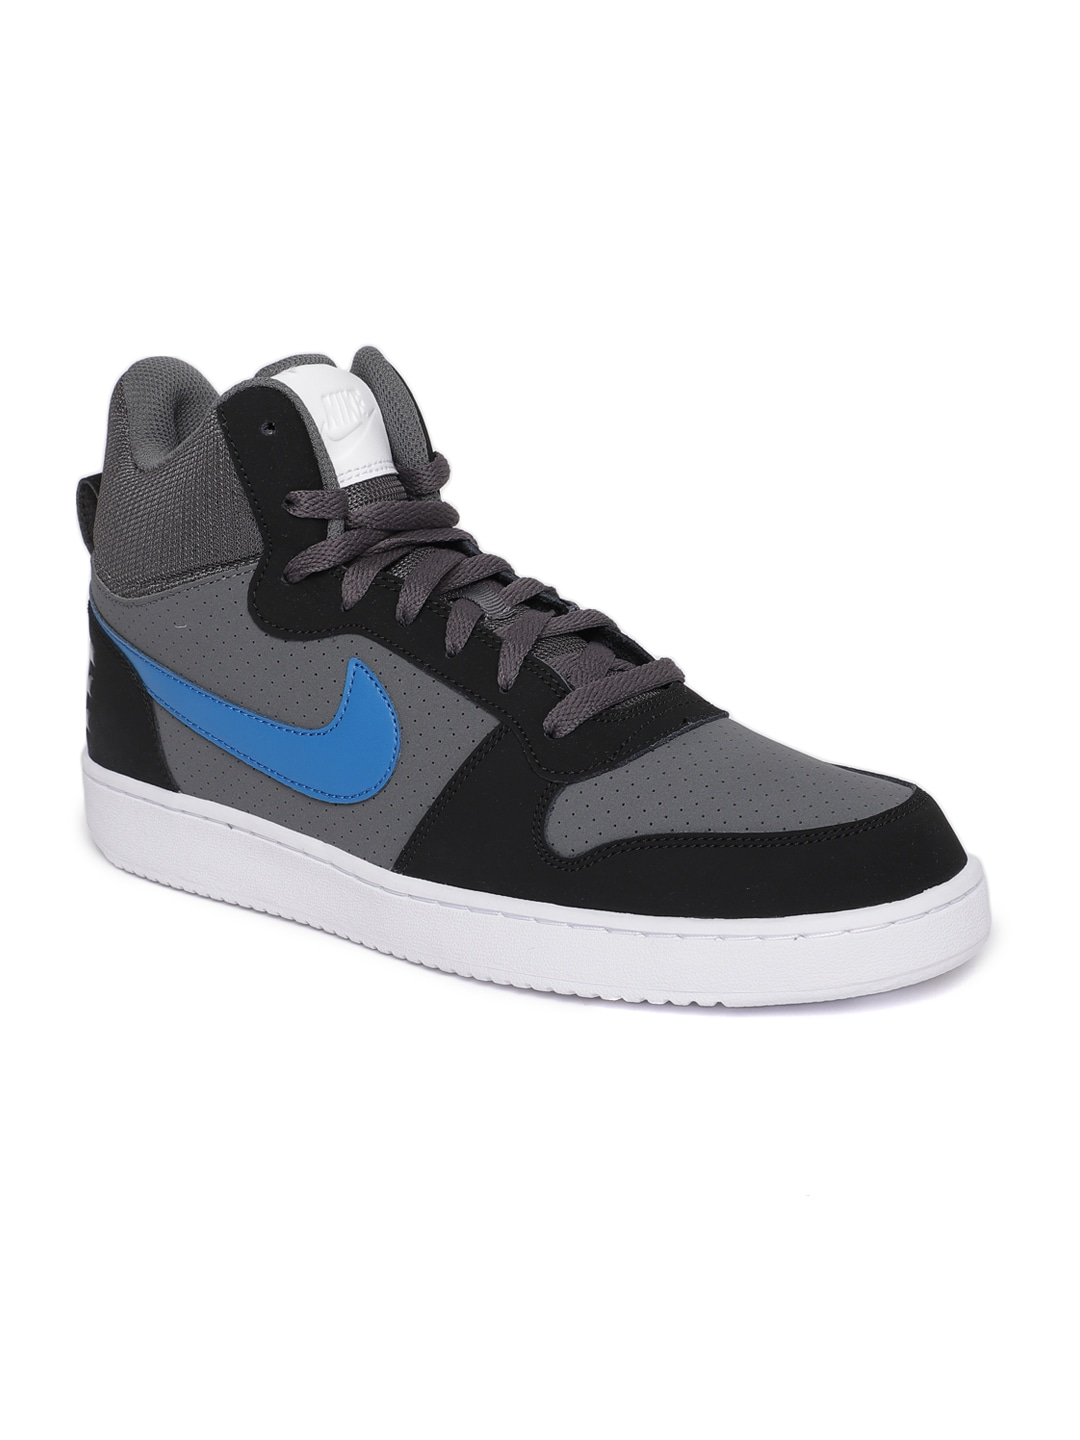 newest 18394 b4be1 Nike Justice League Shoes - Buy Nike Justice League Shoes online in India